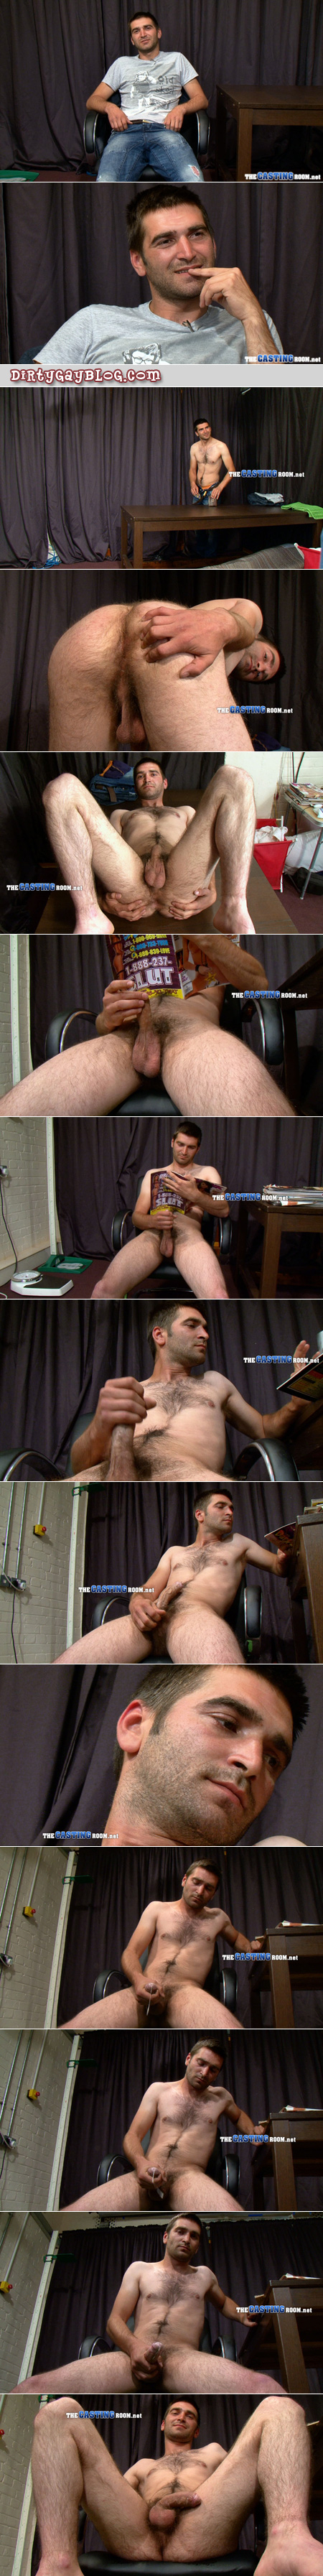 Hairy straight guy is caught on camera masturbating to a porno magazine.